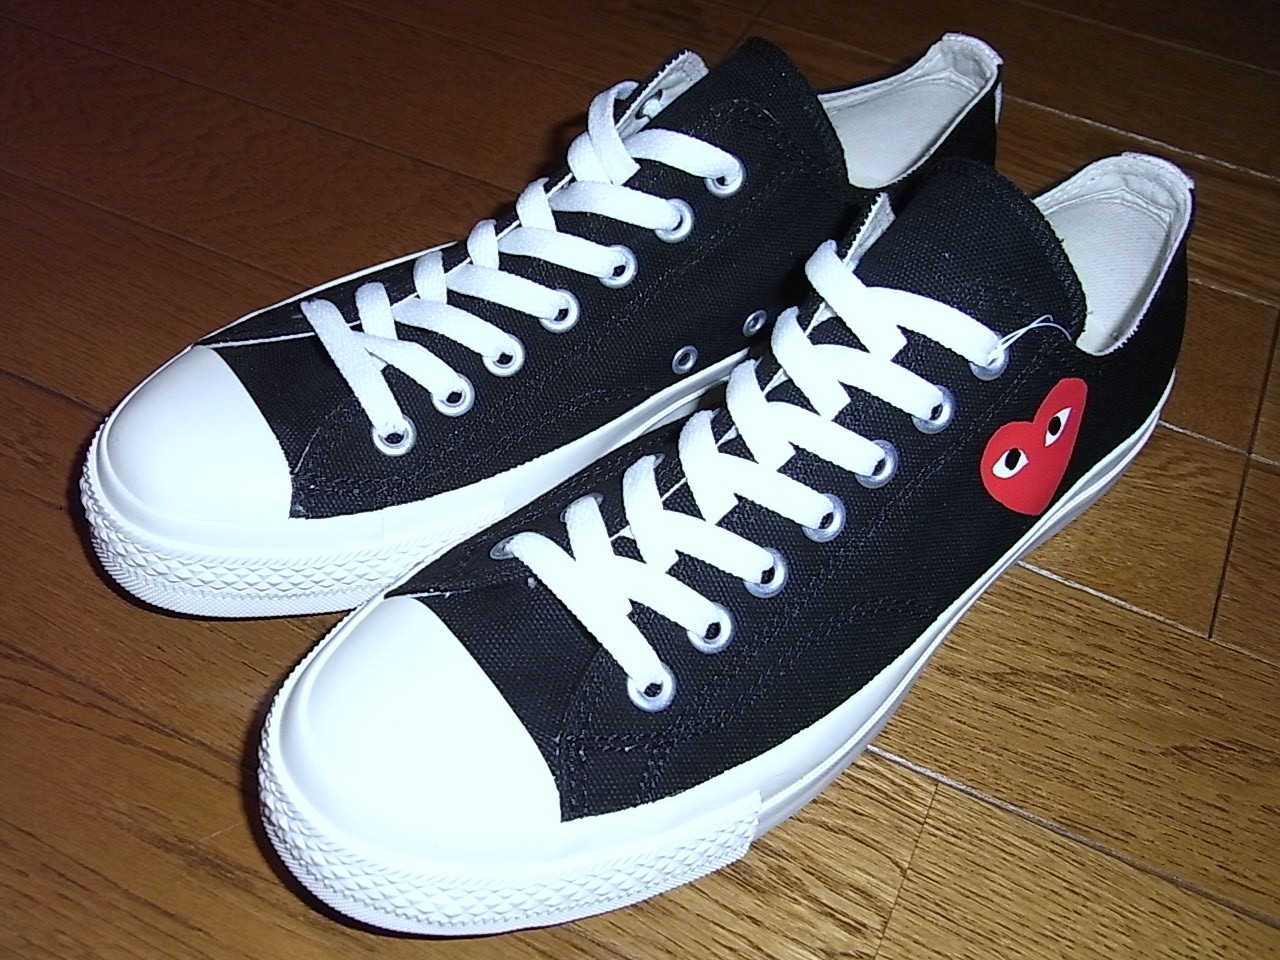 PLAY COMME des GARCONS x CONVERSE ALL STAR_f0010106_2354546.jpg